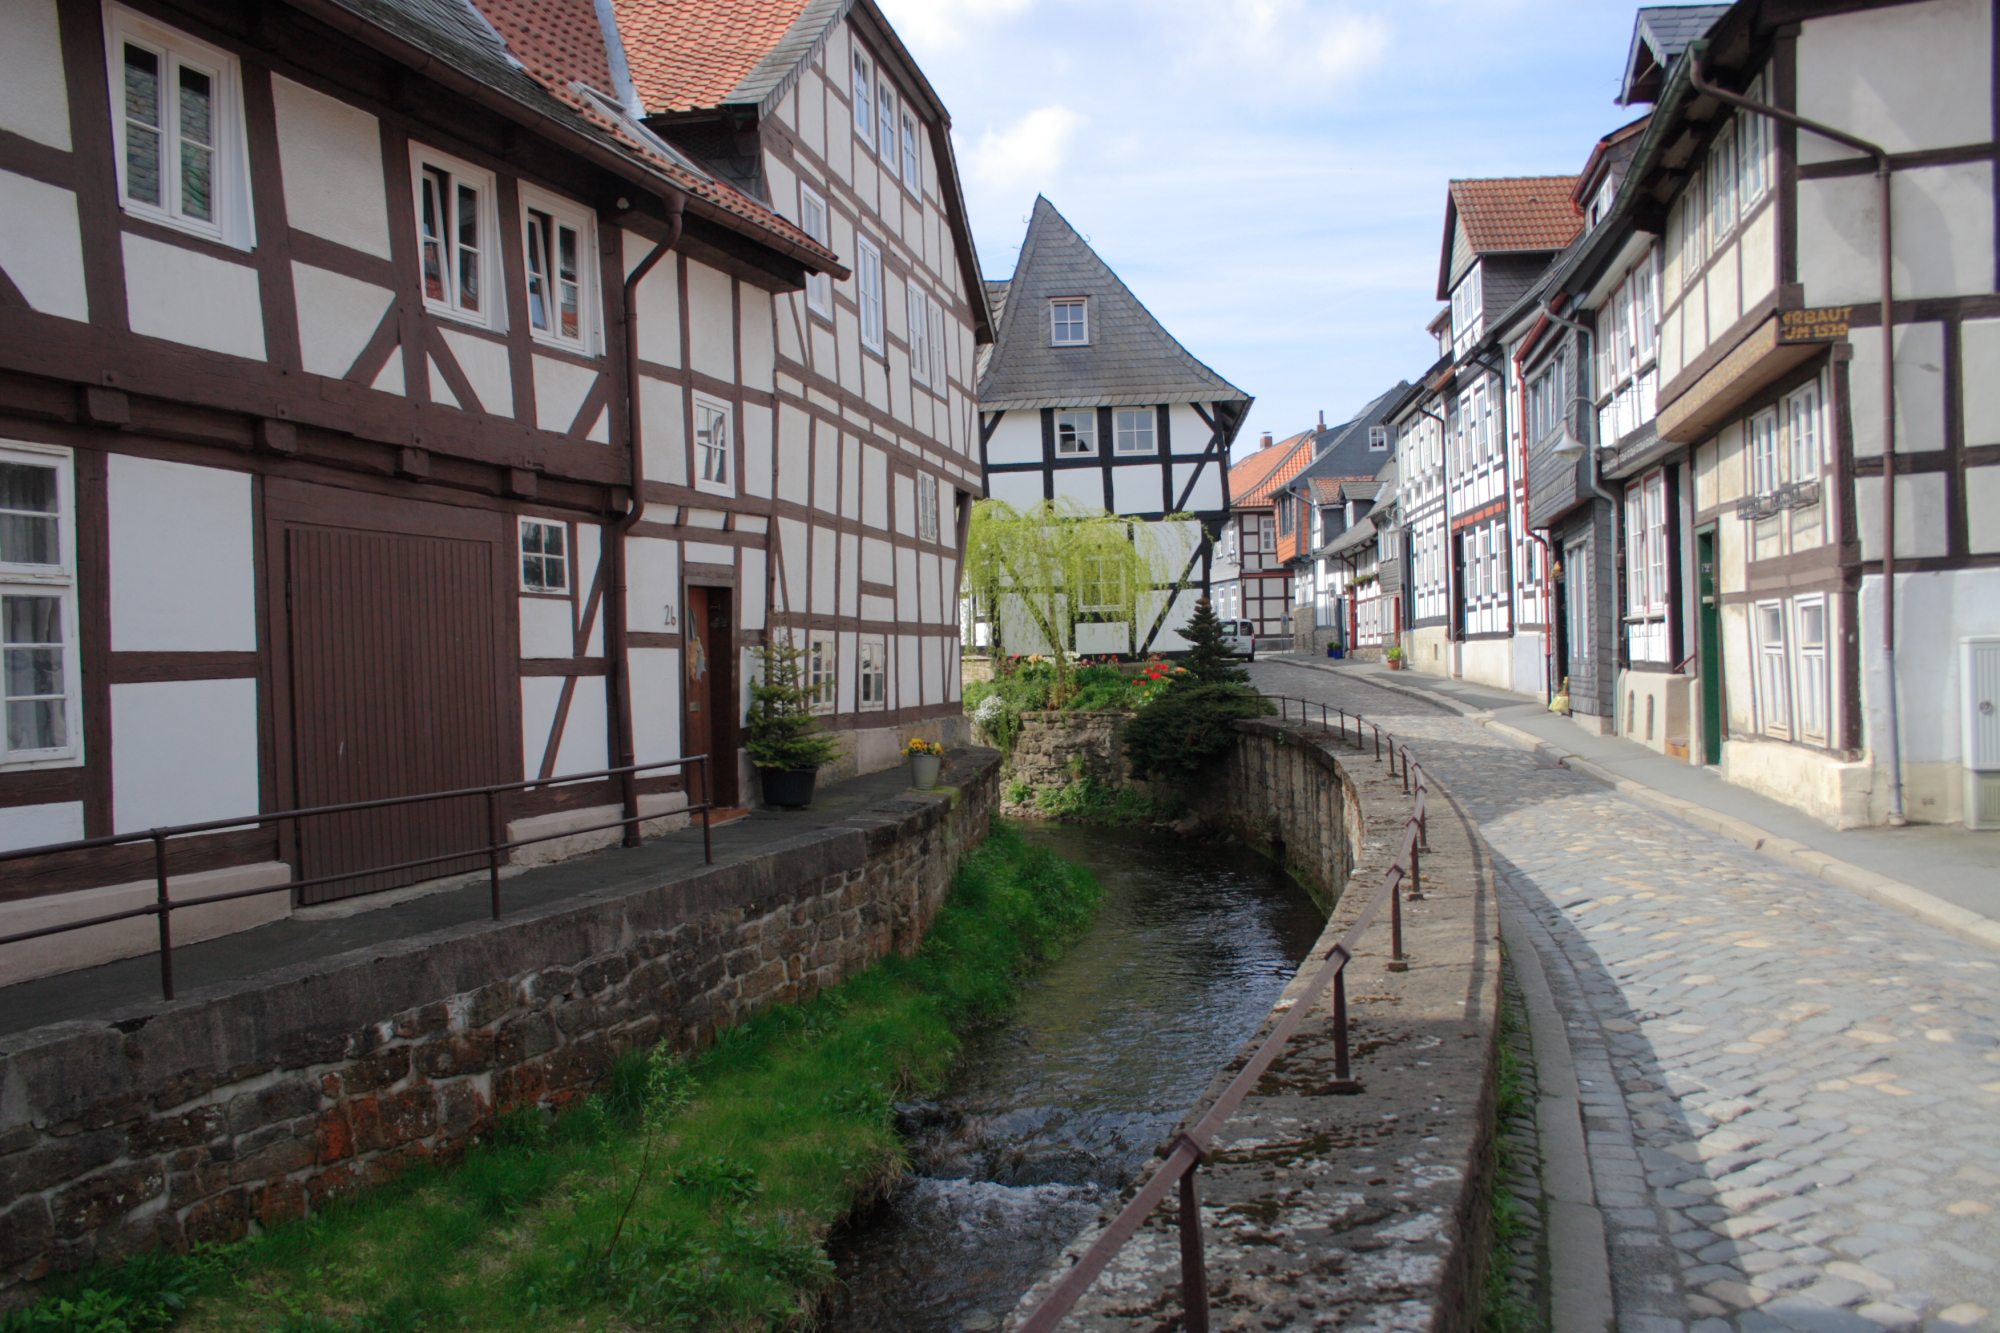 File:Old Town of Goslar.jpg - Wikimedia Commons